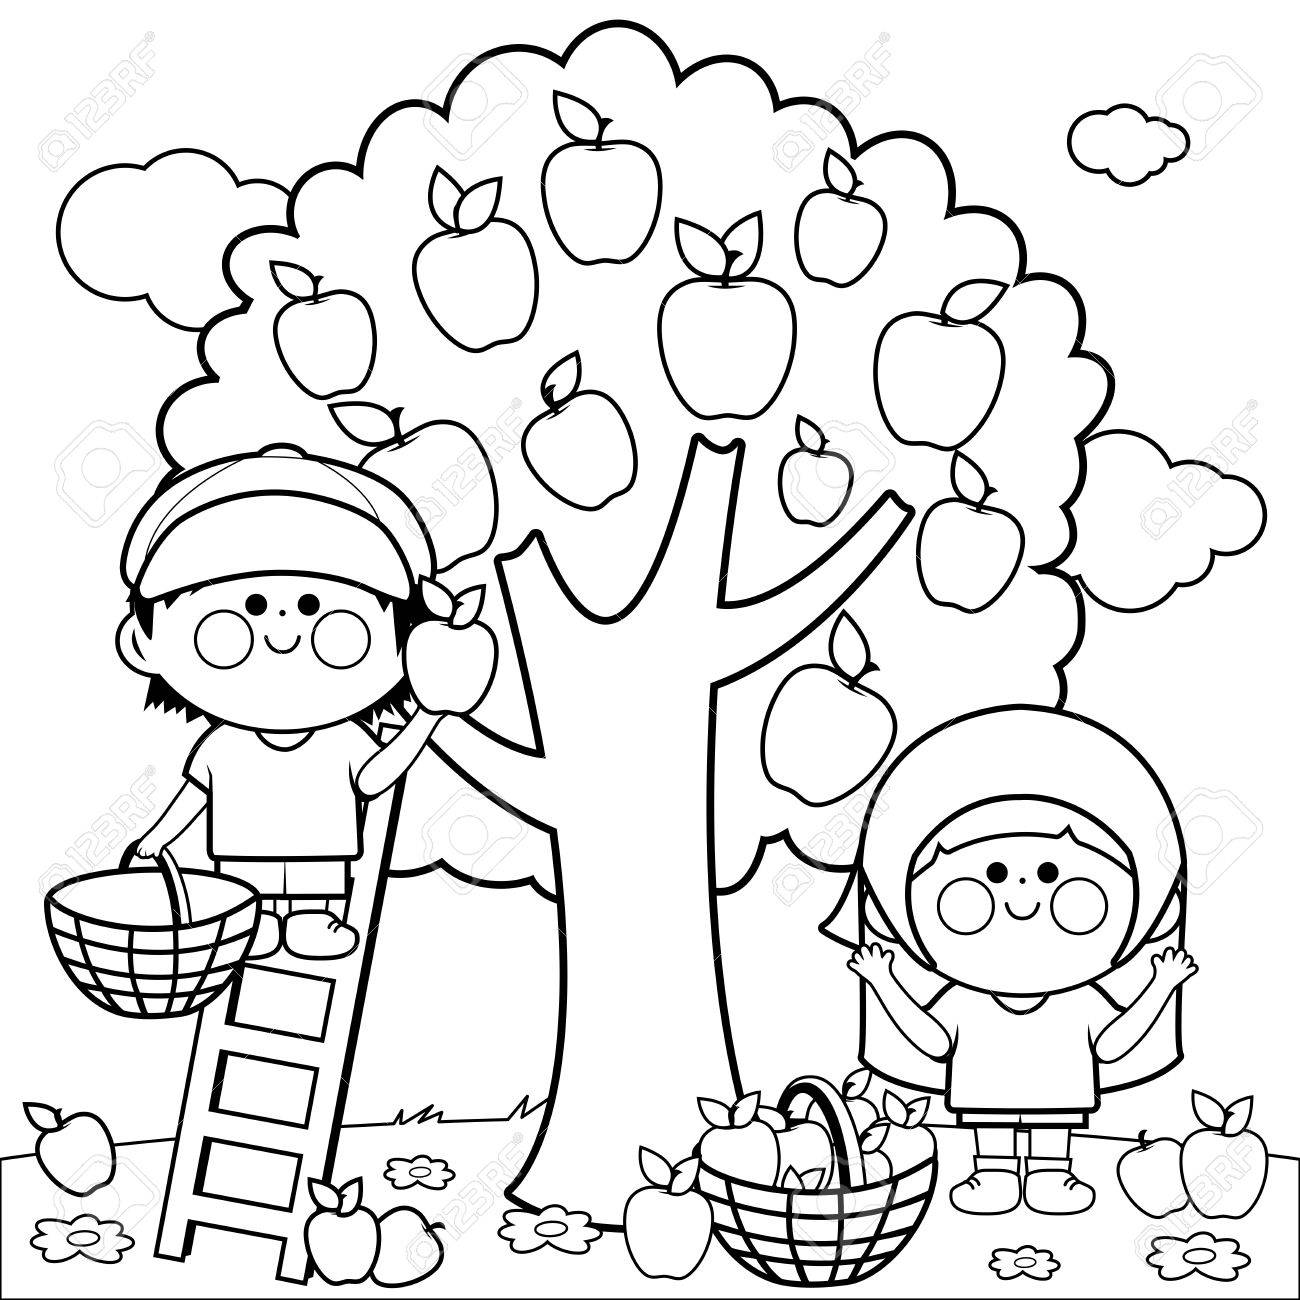 kids harvesting apples coloring book page royalty free cliparts